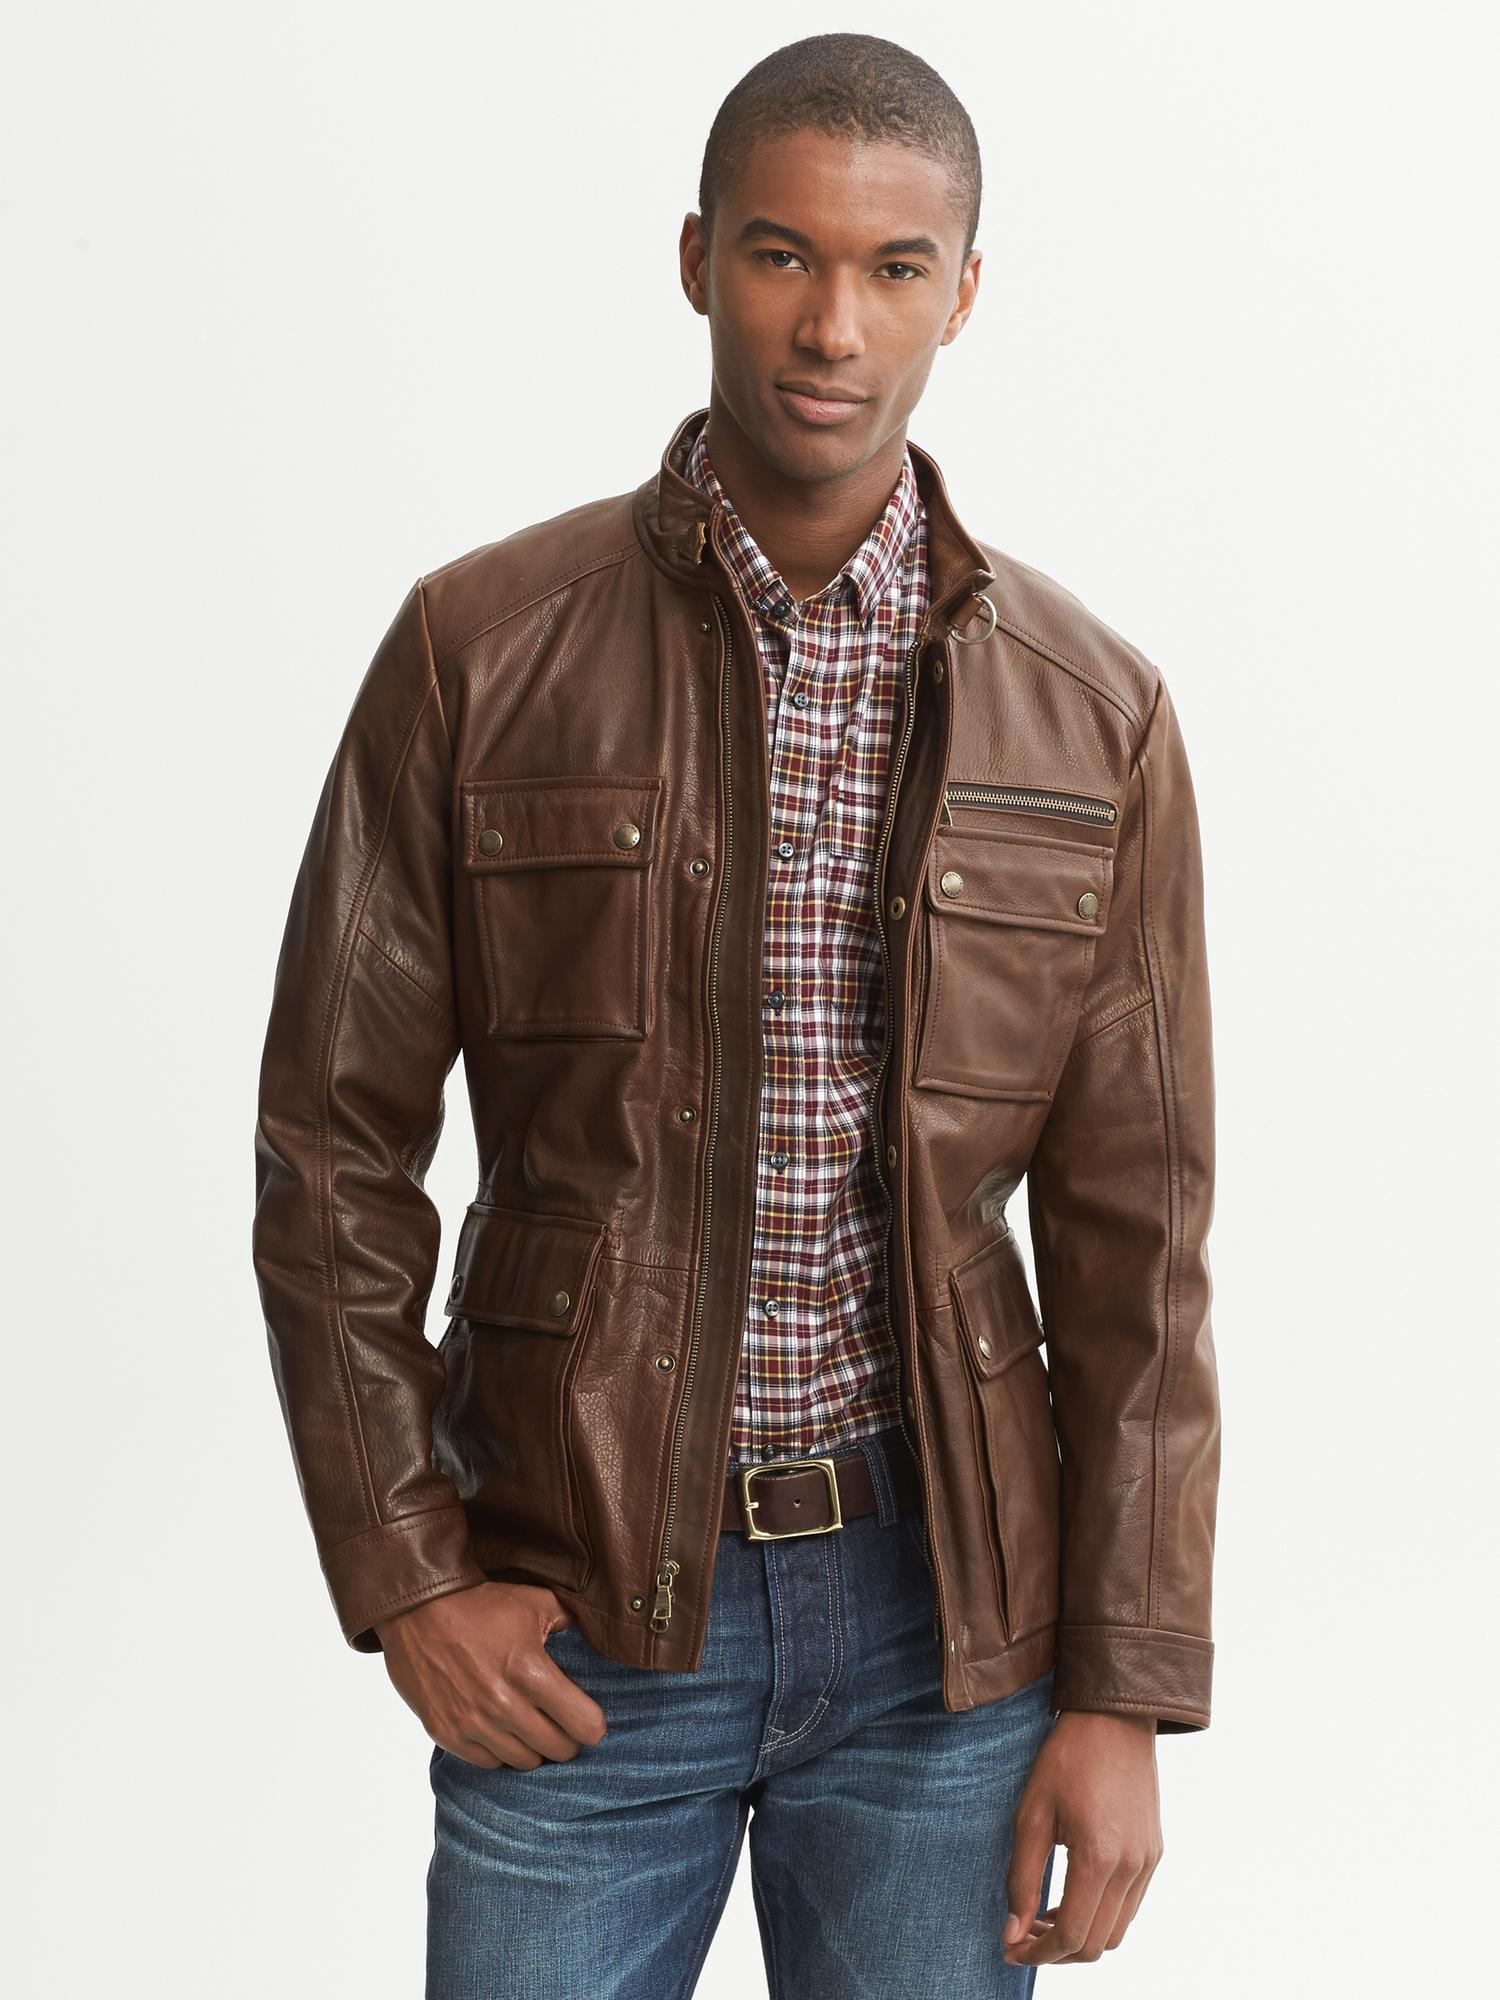 Banana Republic Heritage Brown Leather Jacket Brown For